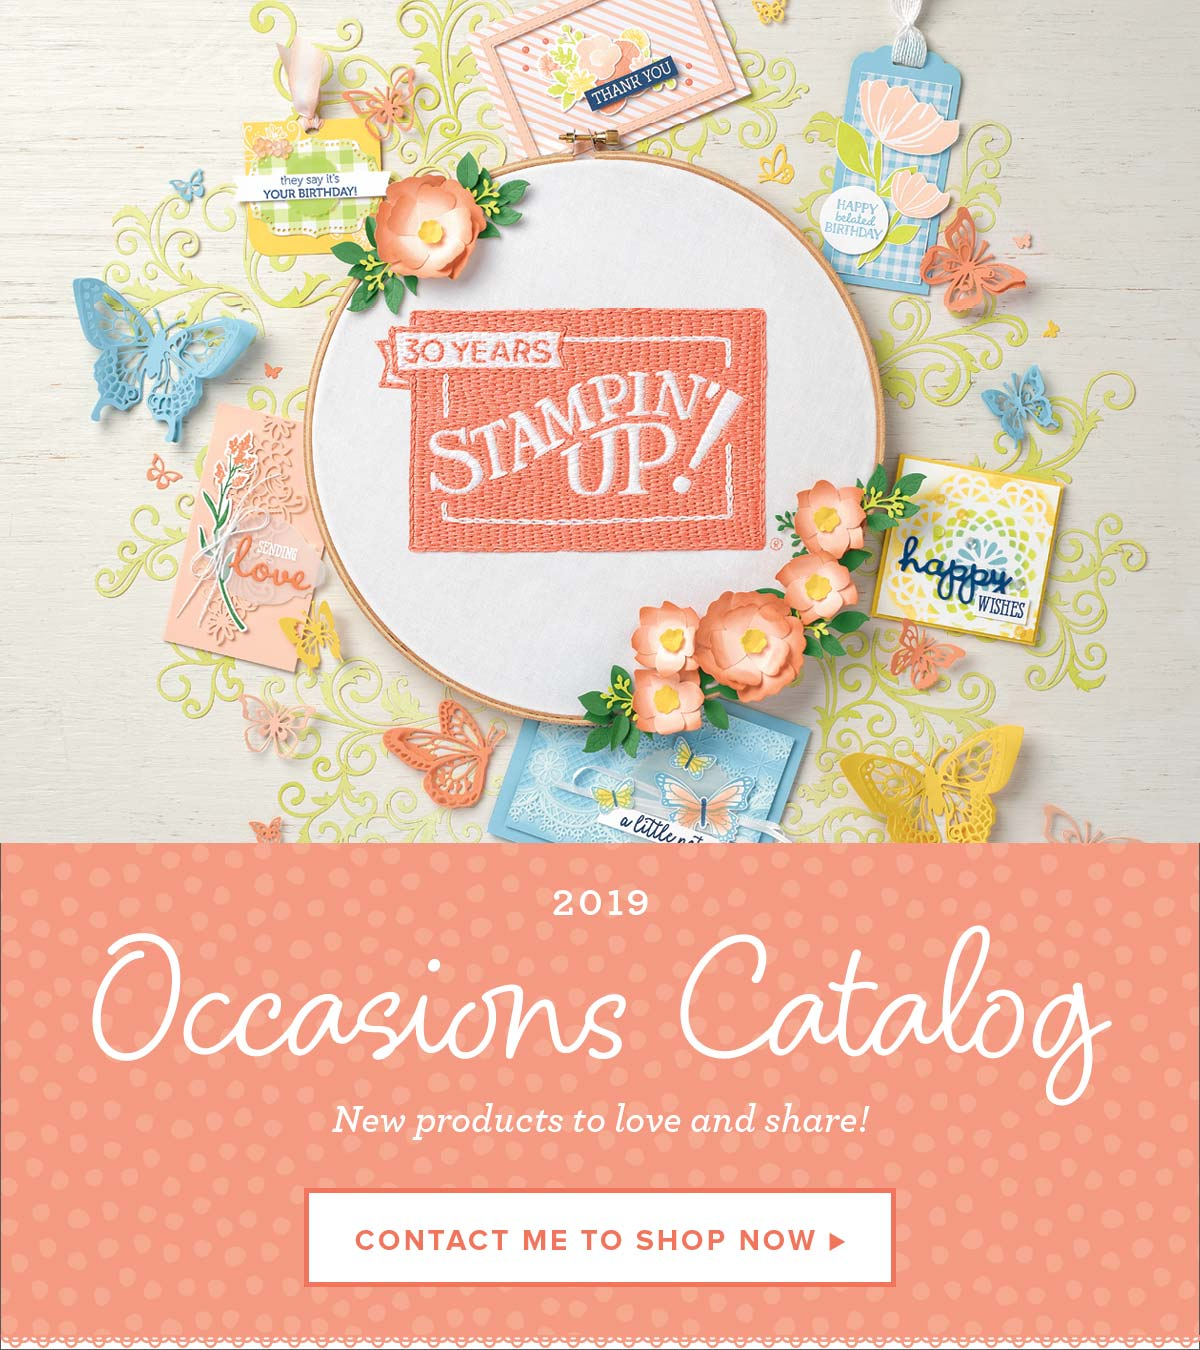 ee21a21c33 The 2019 Occasions Catalog goes live today! This is the biggest event all  year! Shop the Occasions Catalog and with every $50 purchase, you earn FREE  ...